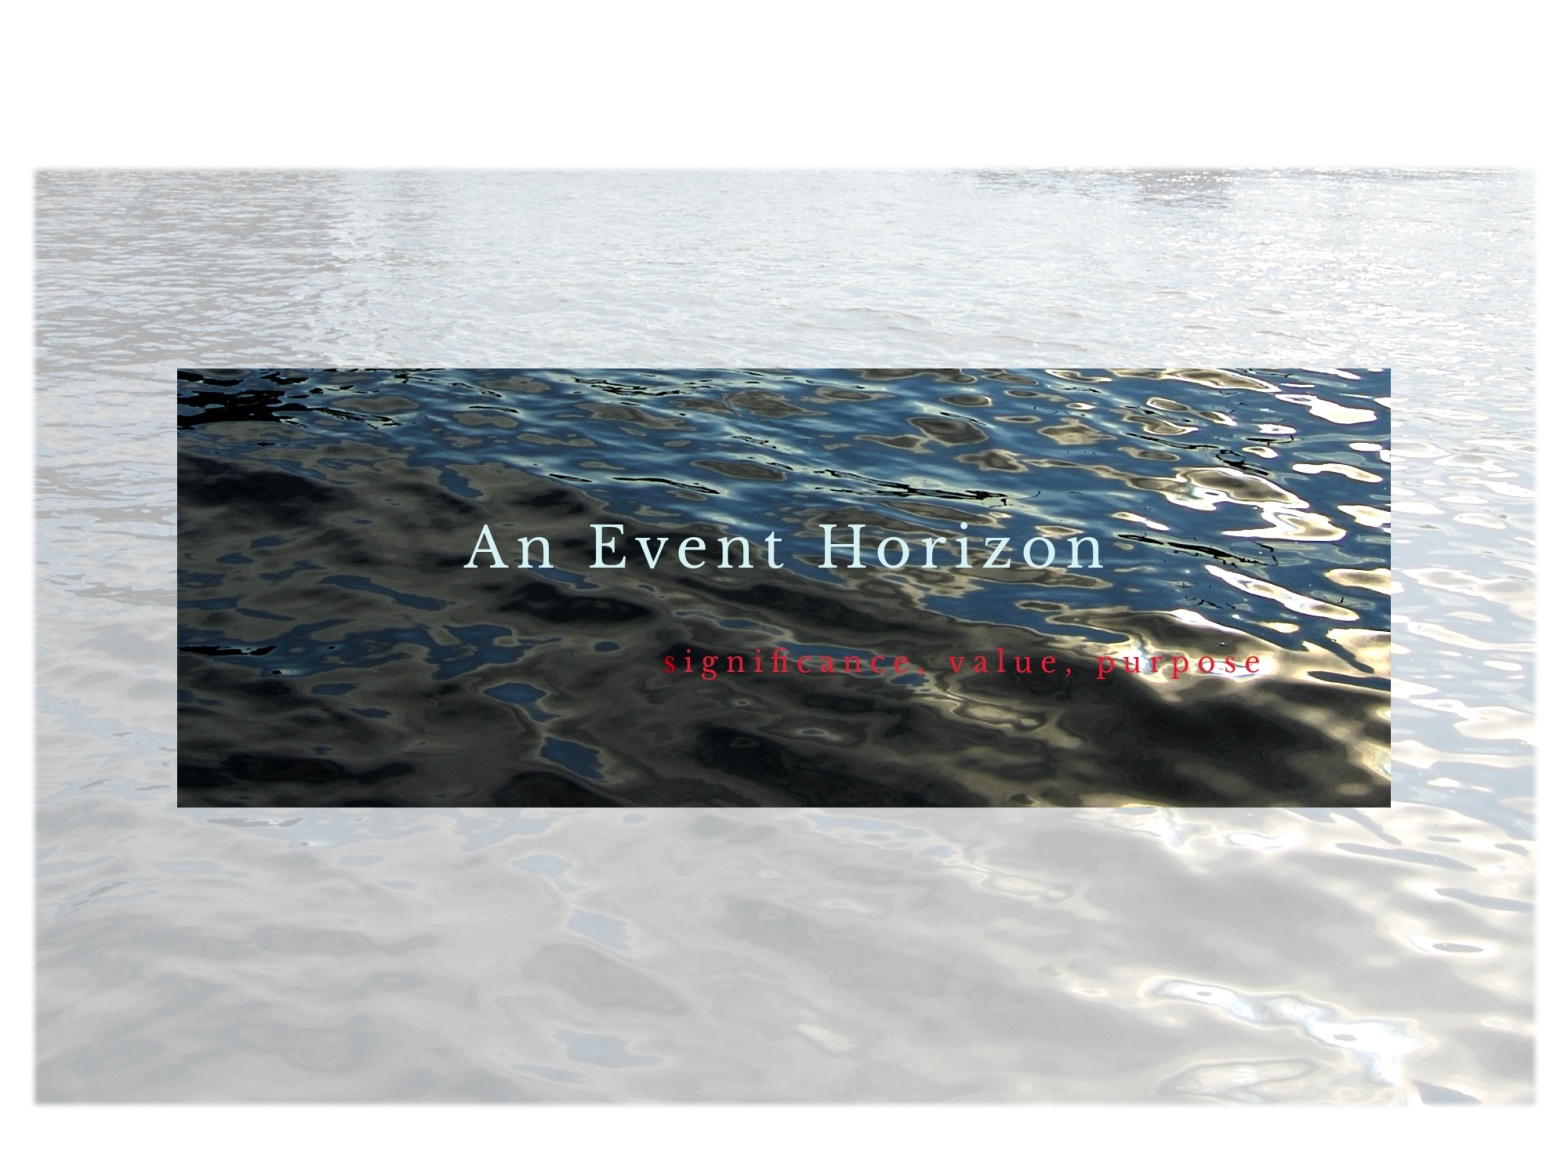 An Event Horizon